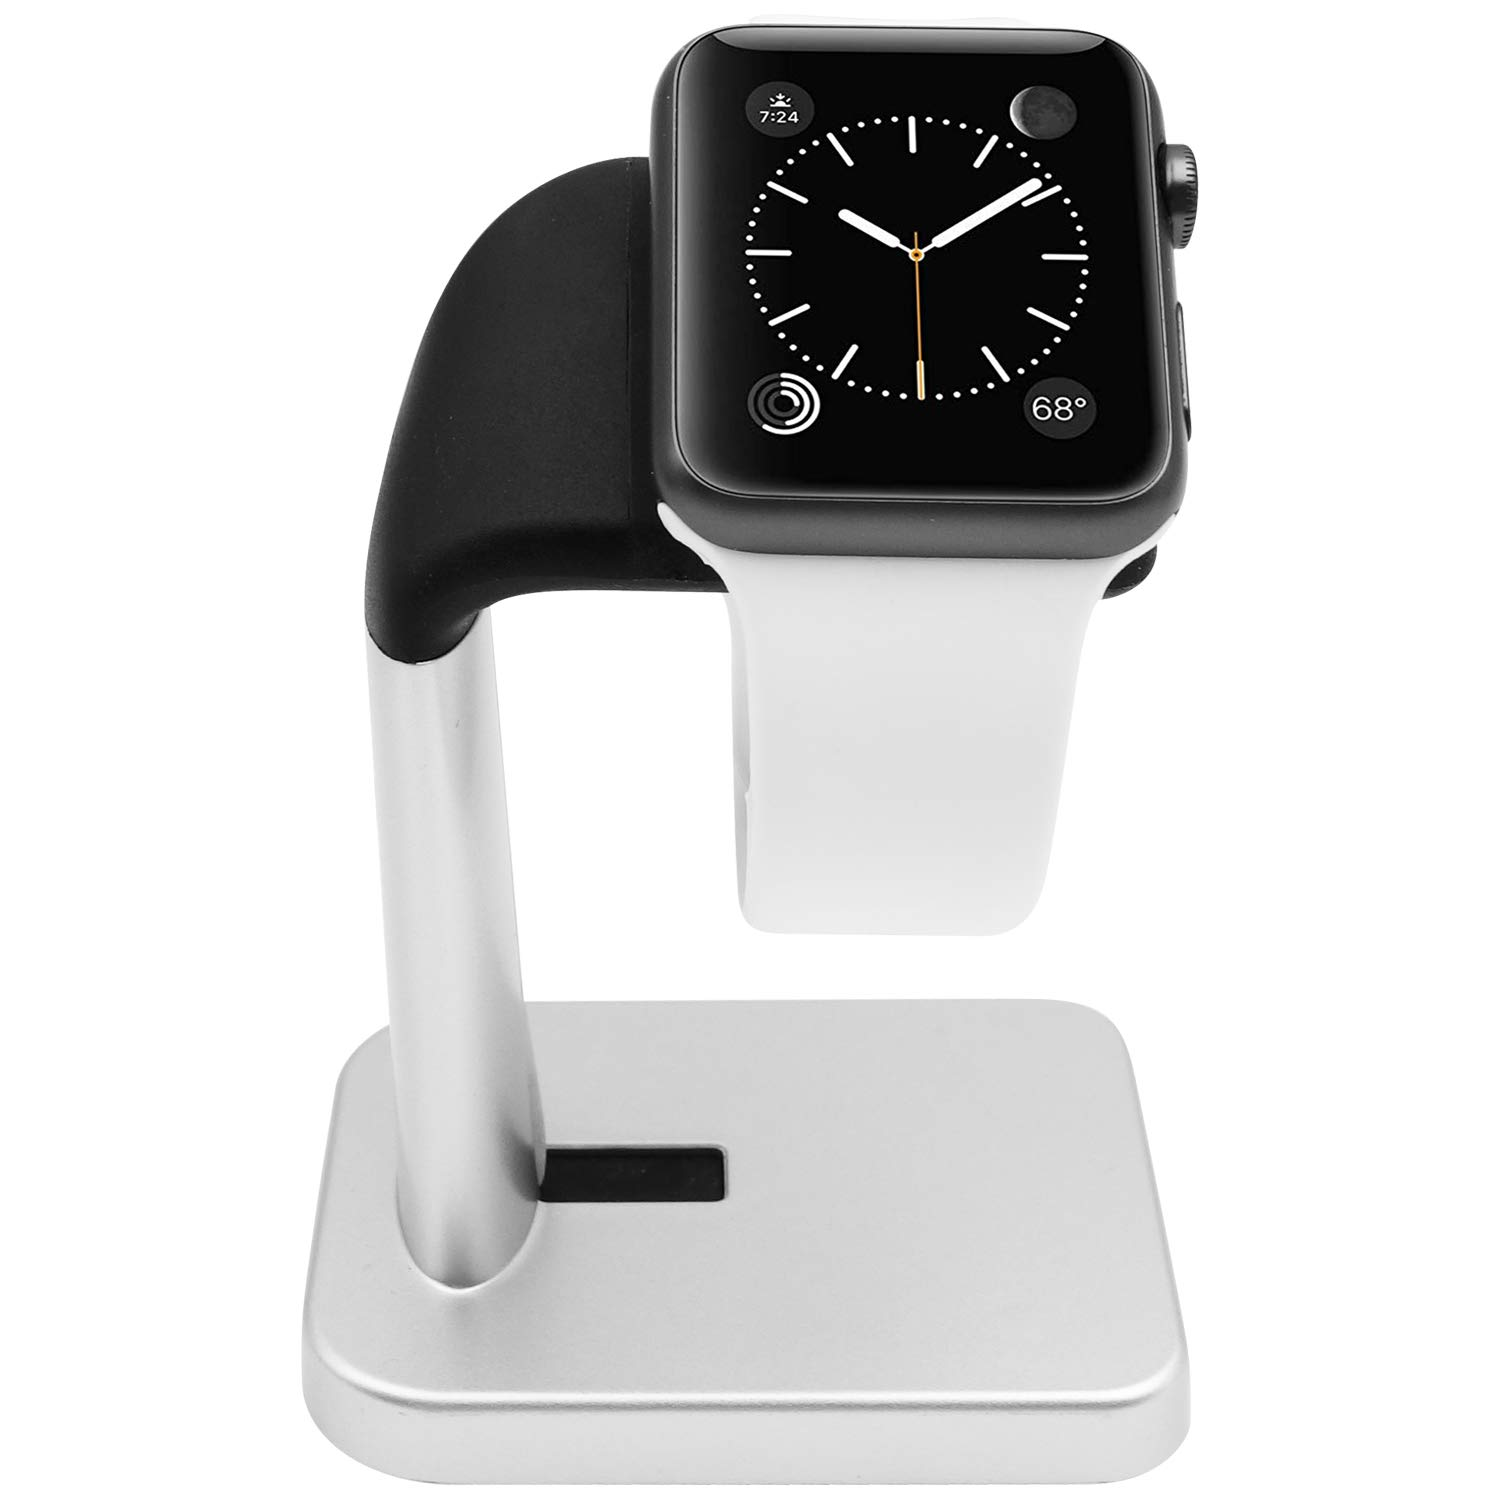 Macally Apple Watch Stand Holder - The Perfect Nightstand iWatch Charging Dock Station - Compatible with Smartwatch Series 5, Series 4, Series 3, ...